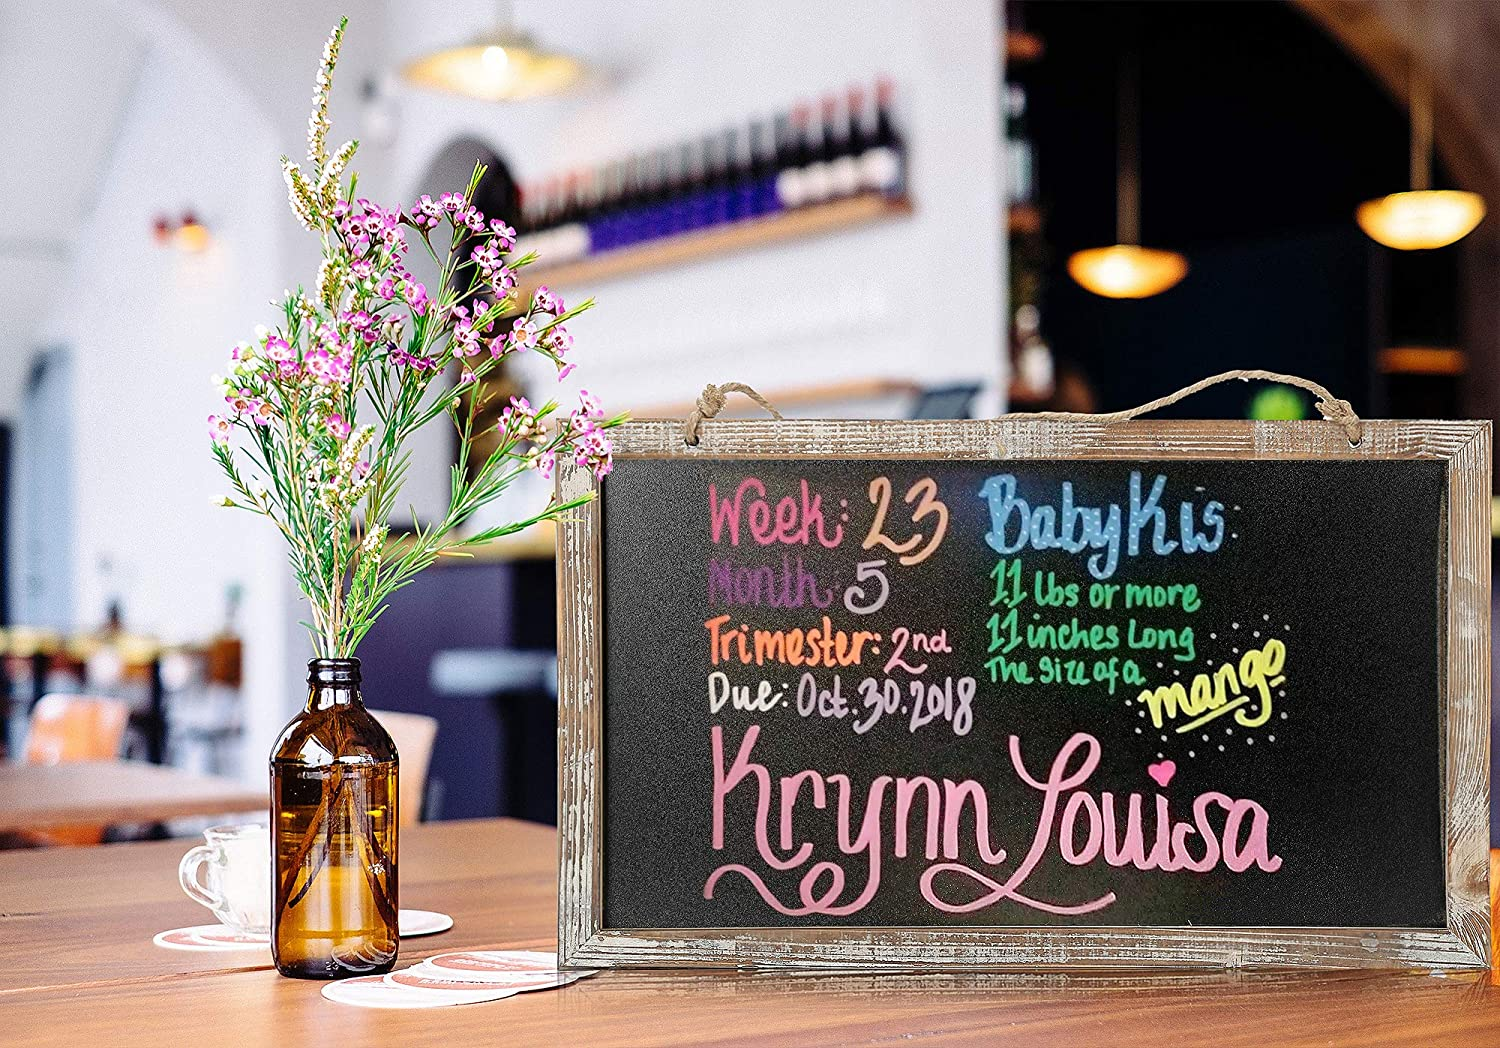 Chalkboard Sign-Vintage Framed Kitchen Chalkboard-Decorative Chalk Board for Rustic Wedding Signs 3, 10.517.5 in Kitchen Pantry /& Wall Decor cade-one CALIFORNIA CADE ELECTRONIC Chalkboard